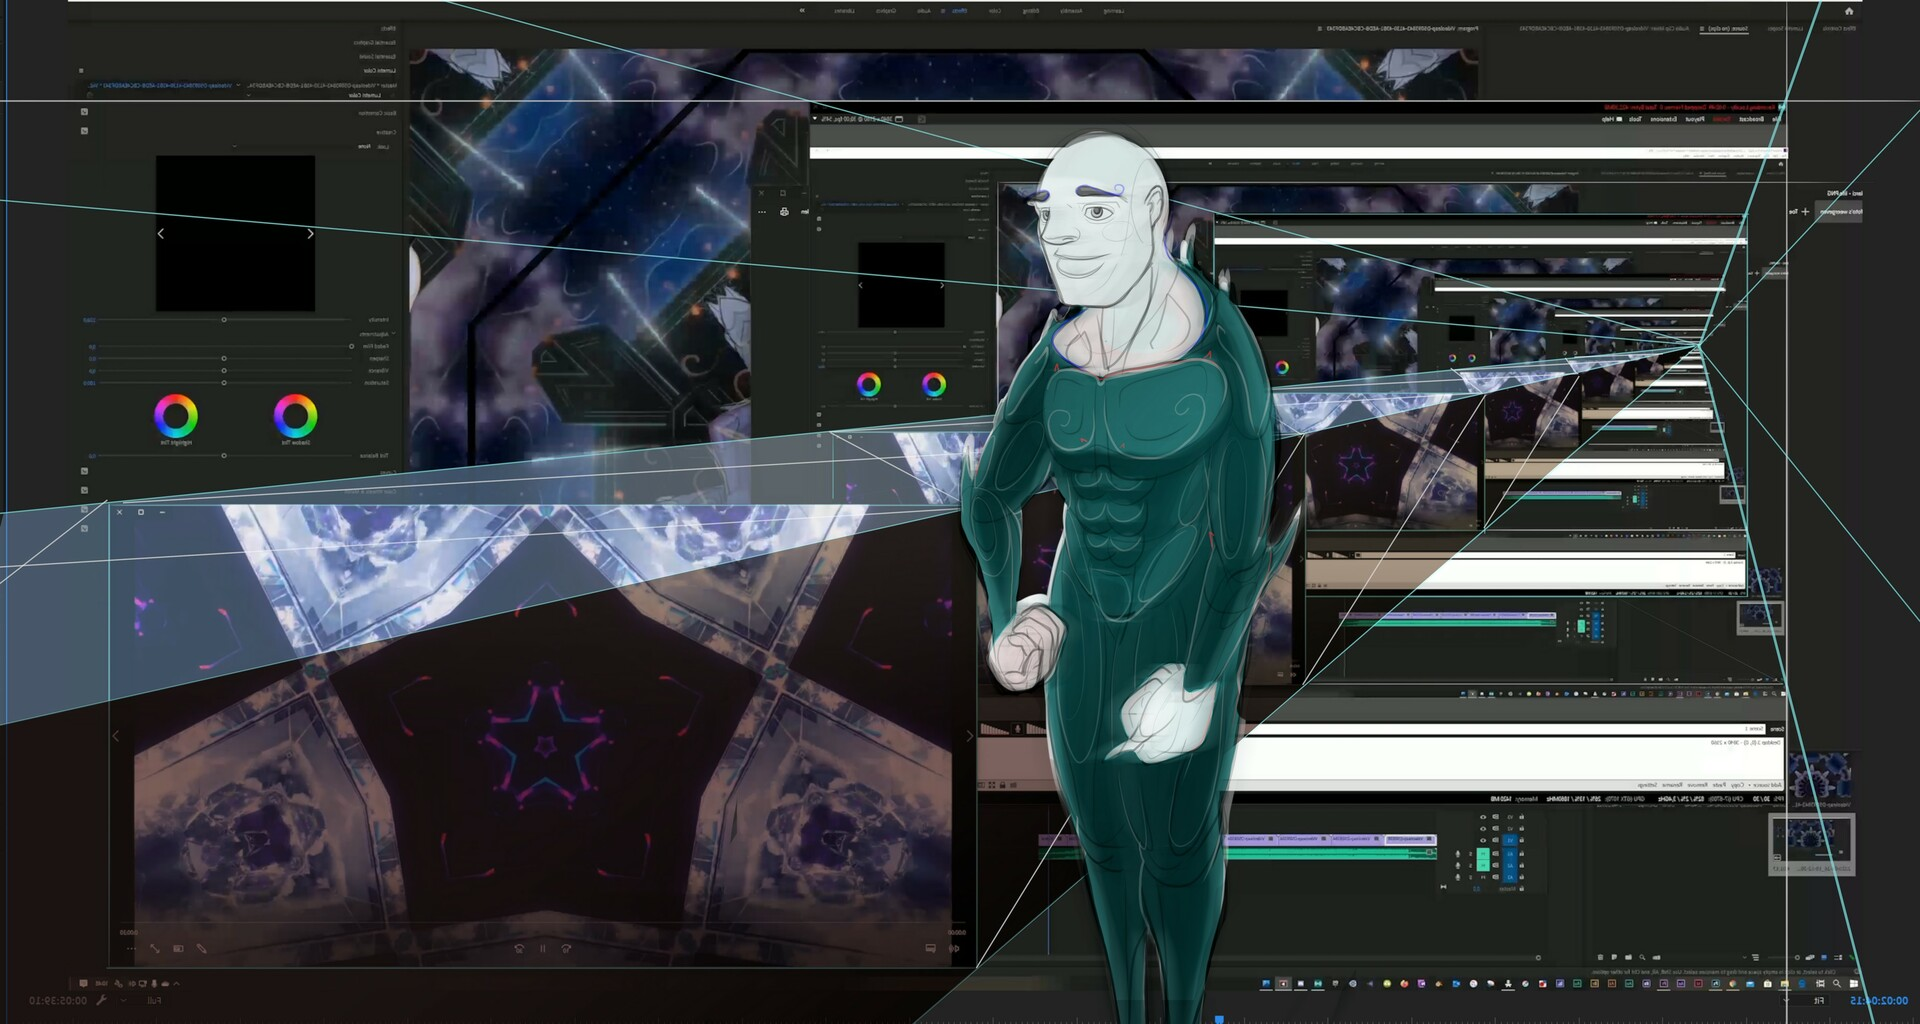 Concept arting: While traveling through Space and Time: WINDOWS into another dimension!